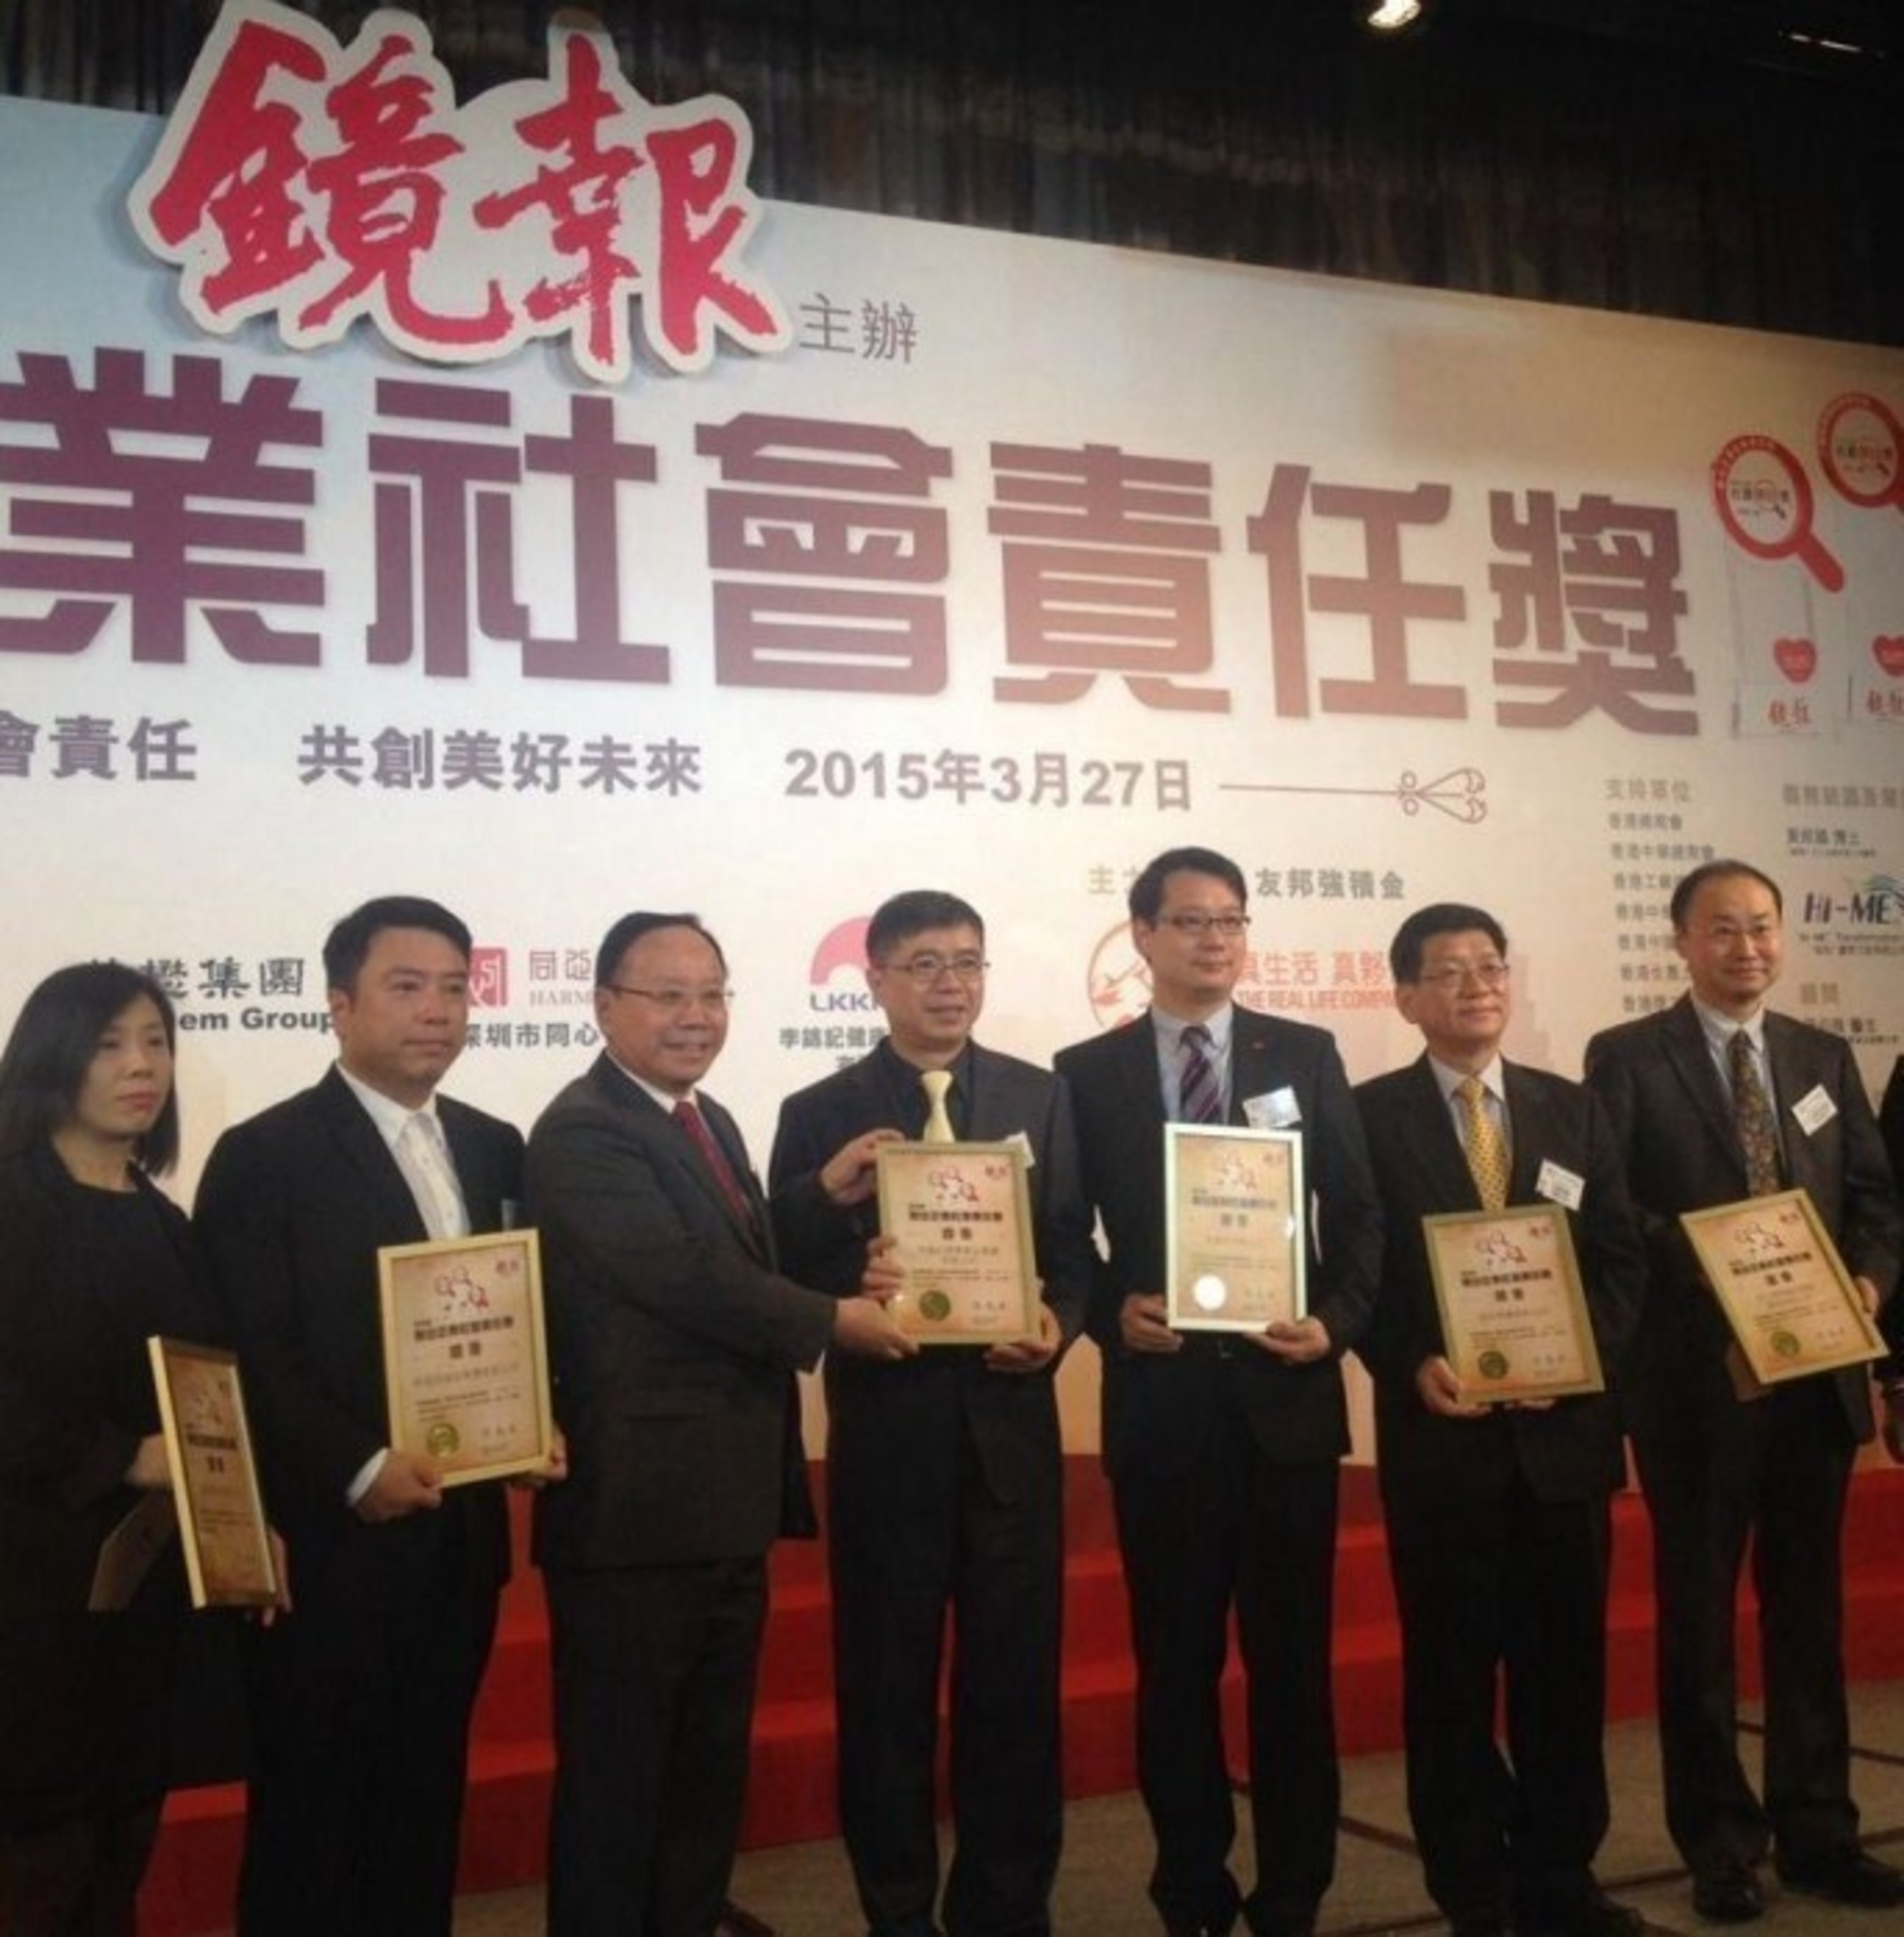 SMIC Wins Mirror Post 'Outstanding Corporate Social Responsibility' Award for the Second Time